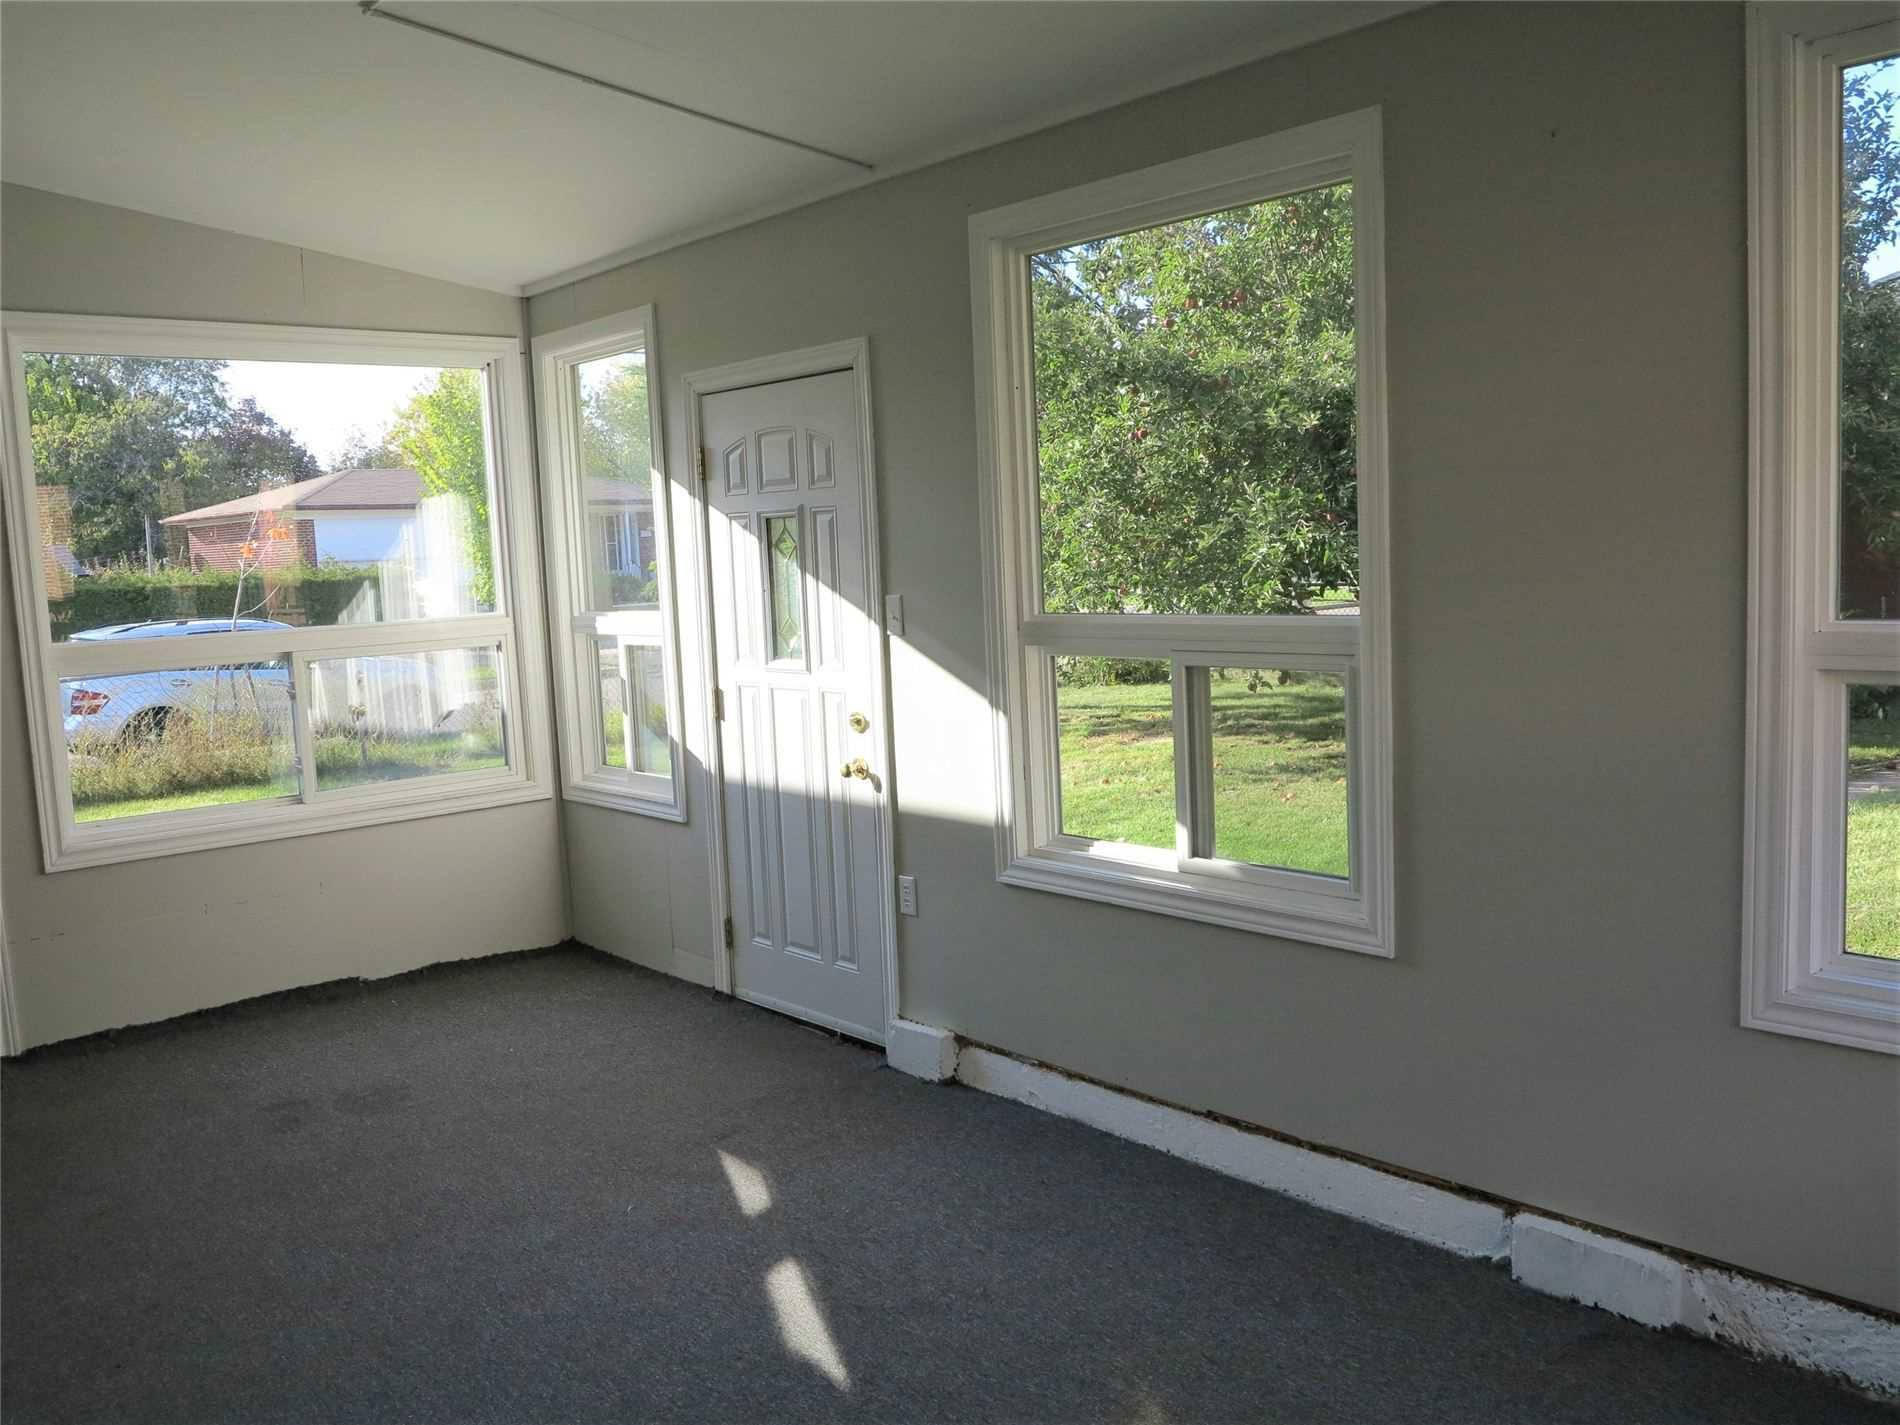 Image 27 of 30 showing inside of 3 Bedroom Detached Bungalow for Lease at 456 Drewry Ave, Toronto M2R2K7